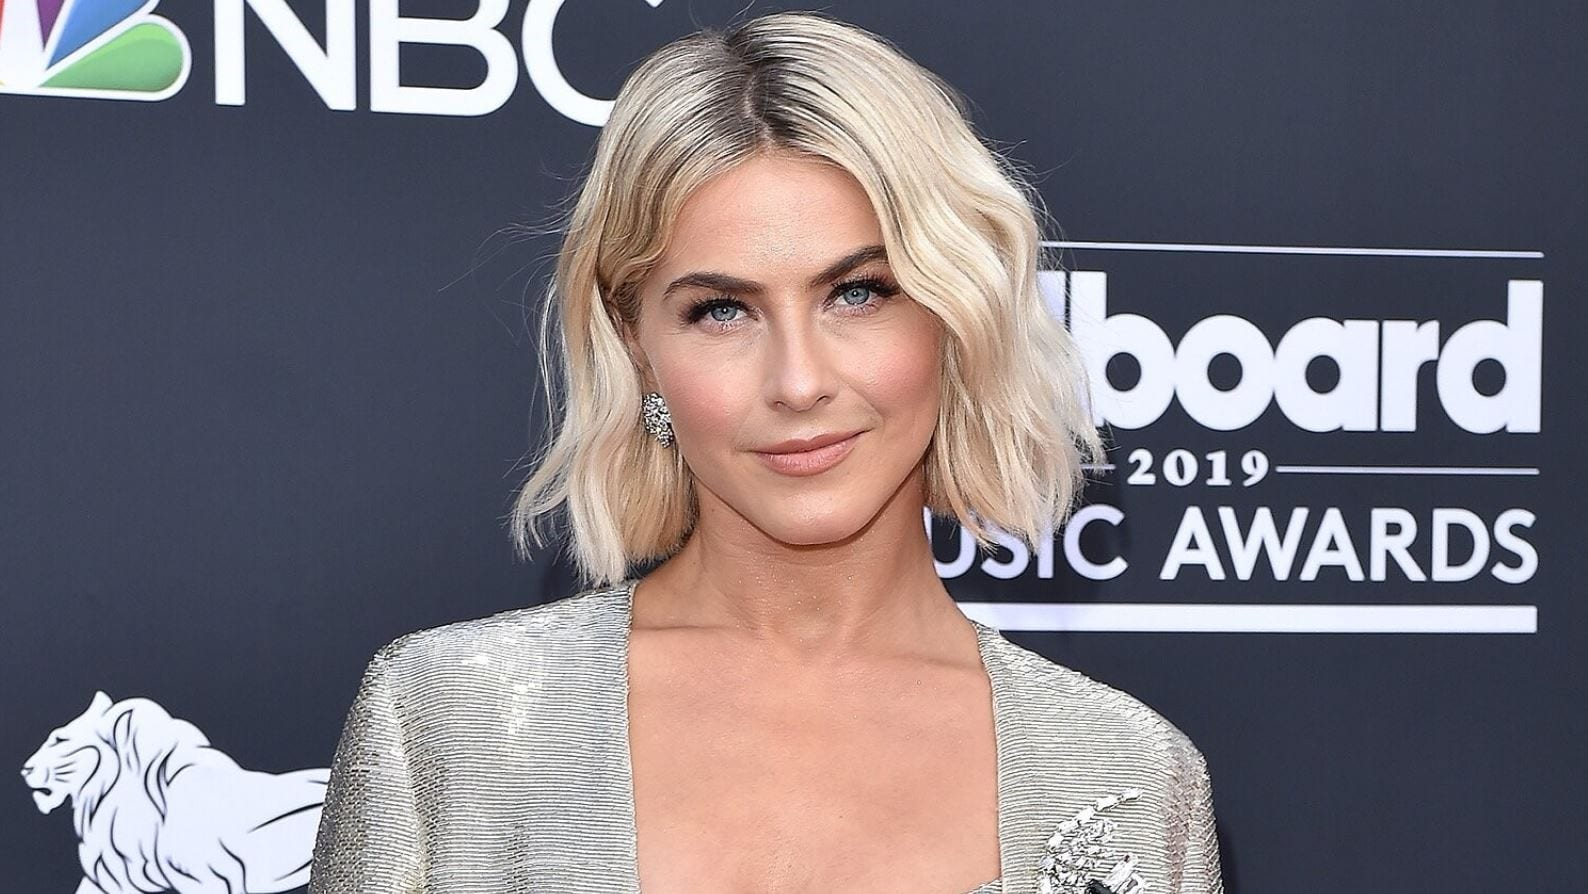 Who Is Julianne Hough Dating in 2021?